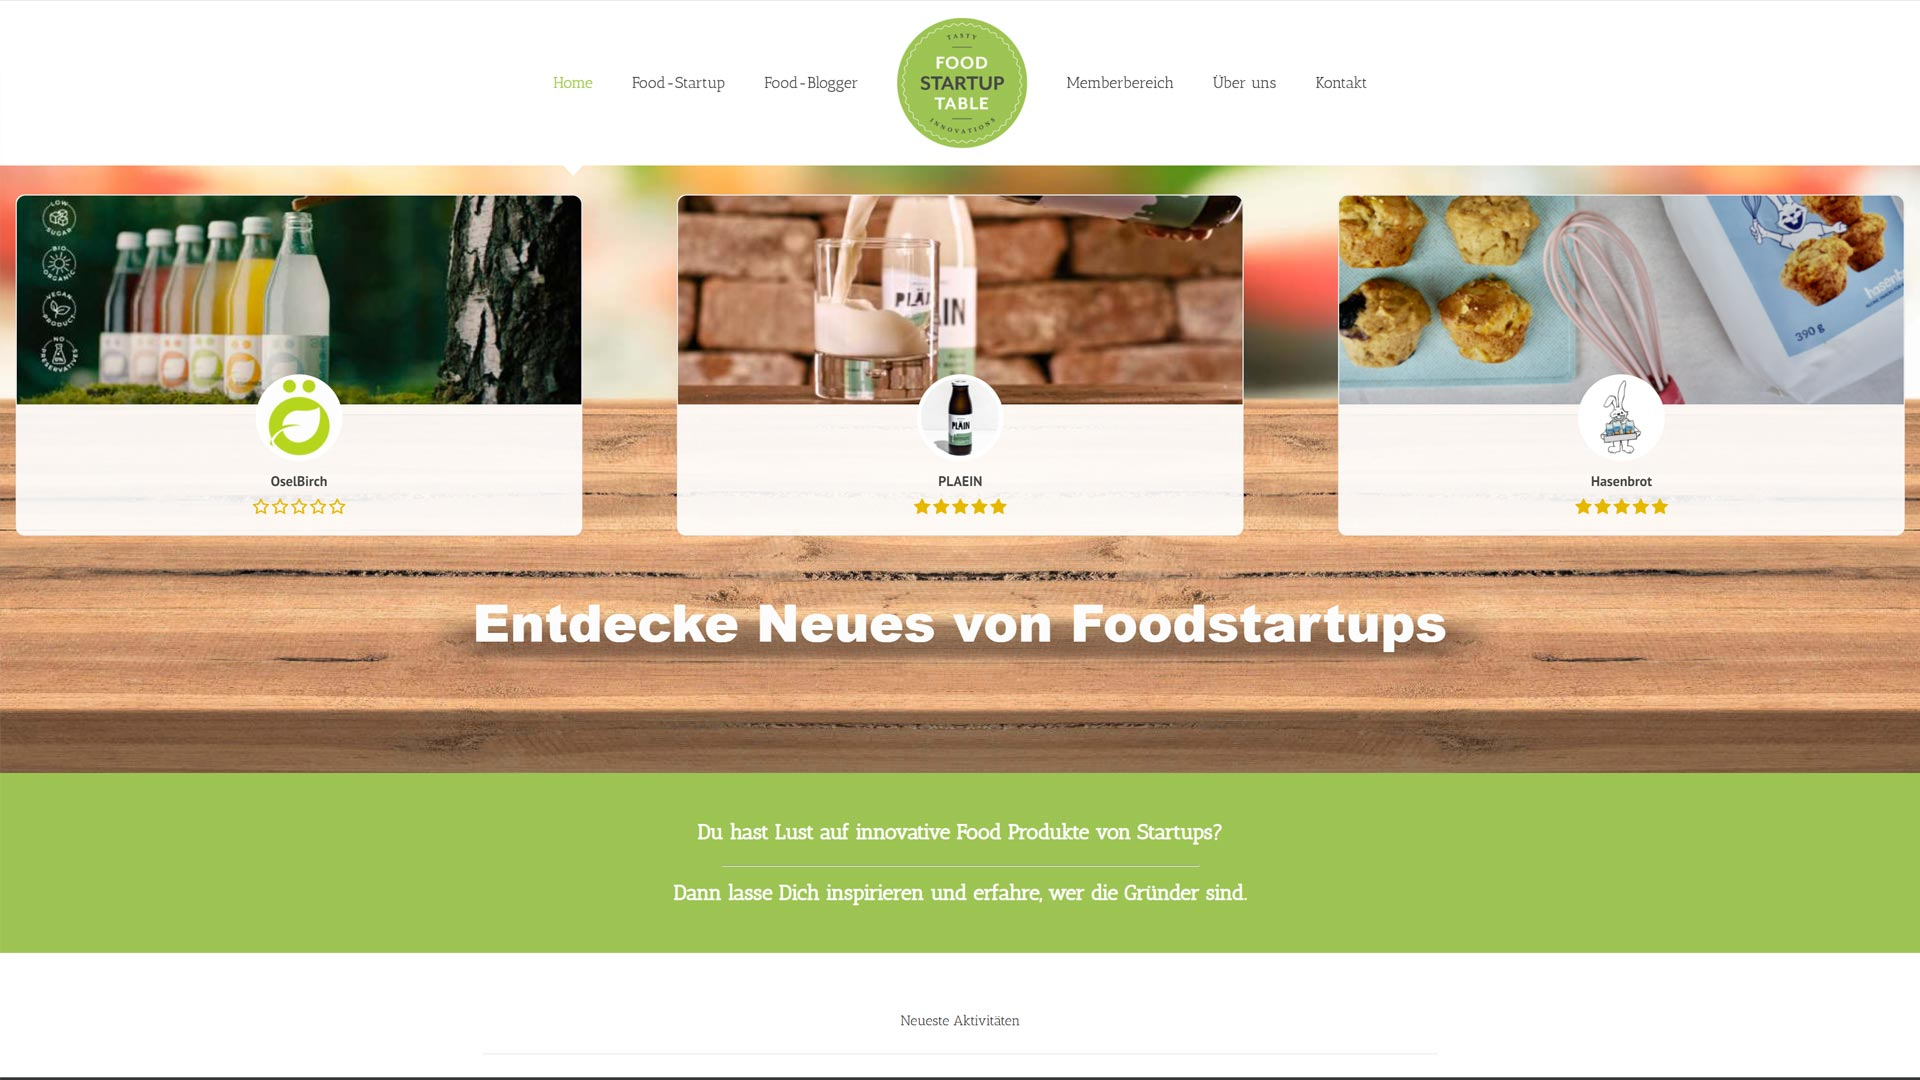 Screenshot: Homepage Foodstartuptable